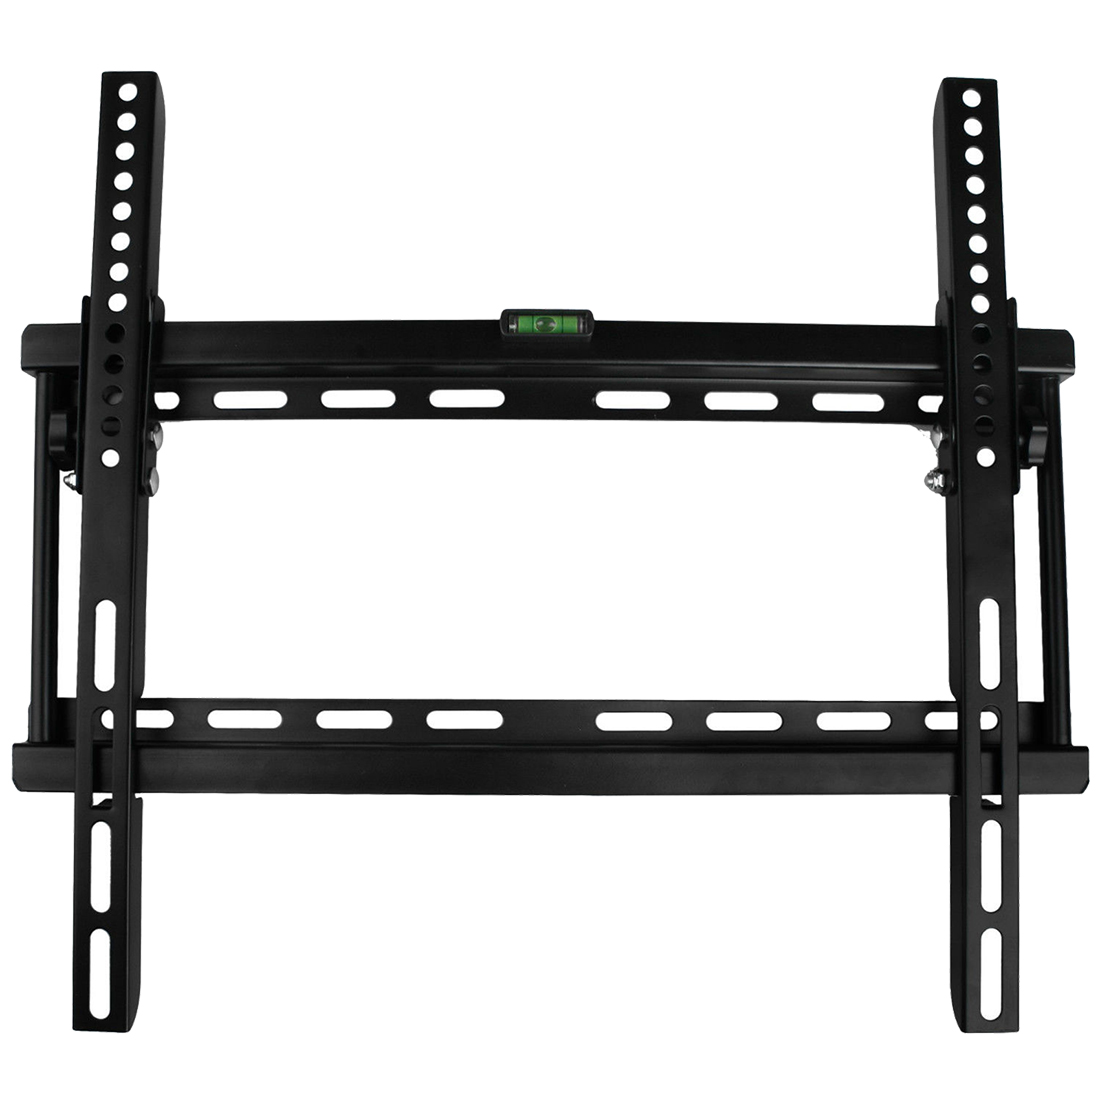 Home Improvement Flat Slim Tv Wall Mount Bracket 23 28 30 32 40 42 48 50 55 Inch Led Lcd Plasma 100% High Quality Materials